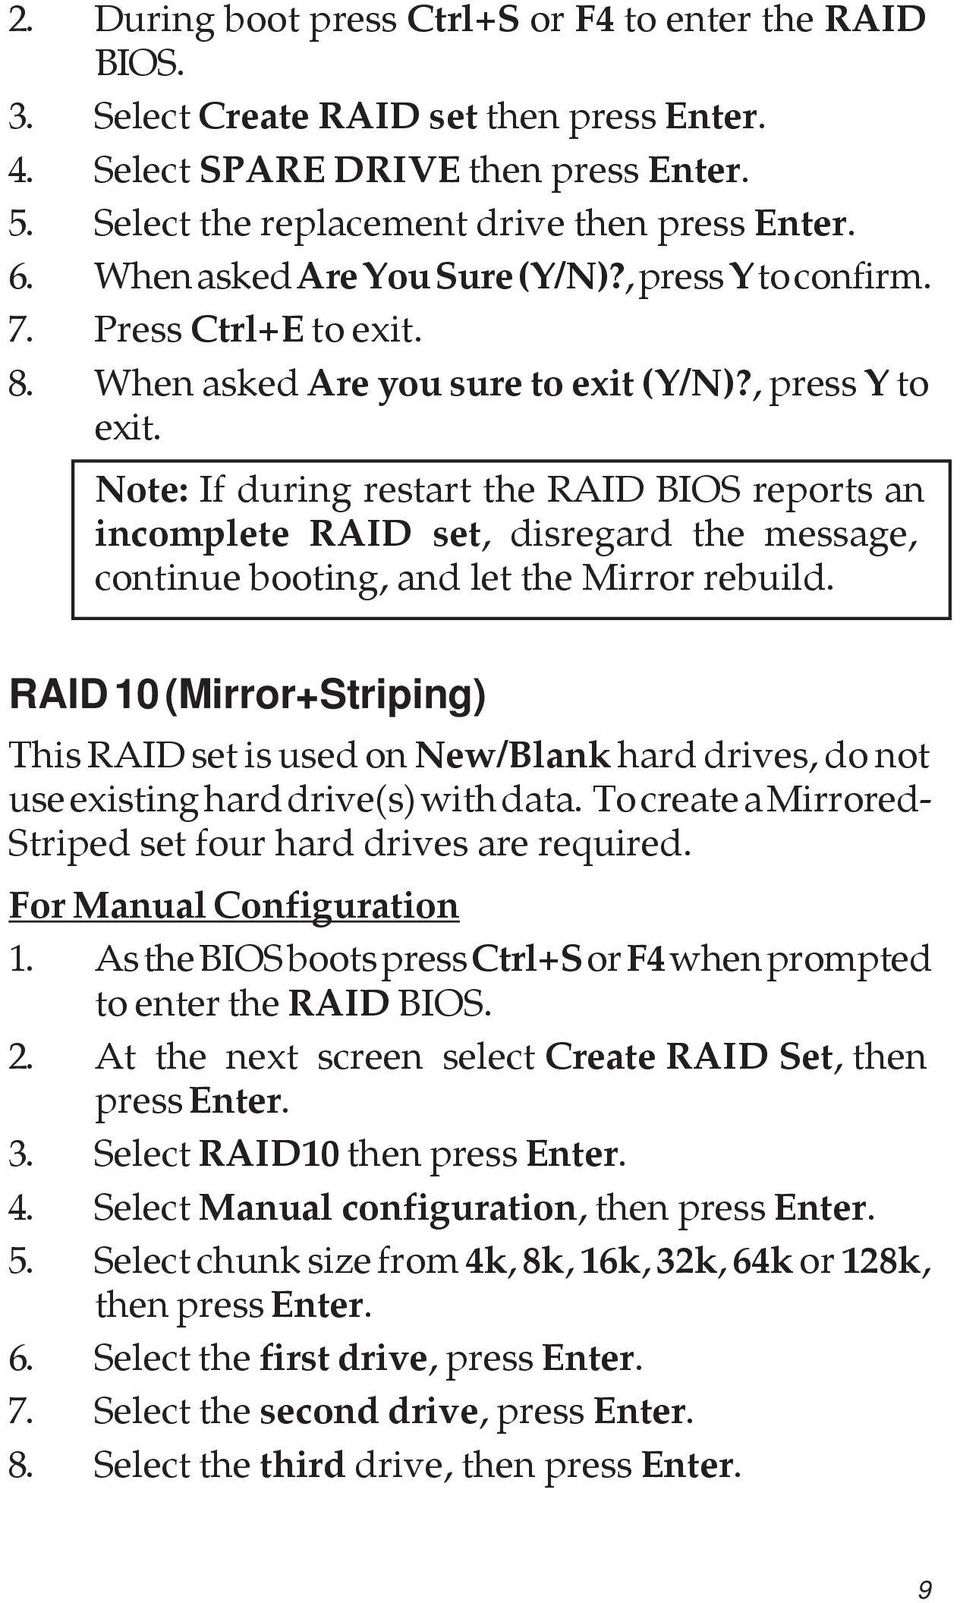 Note: If during restart the RAID BIOS reports an incomplete RAID set, disregard the message, continue booting, and let the Mirror rebuild.